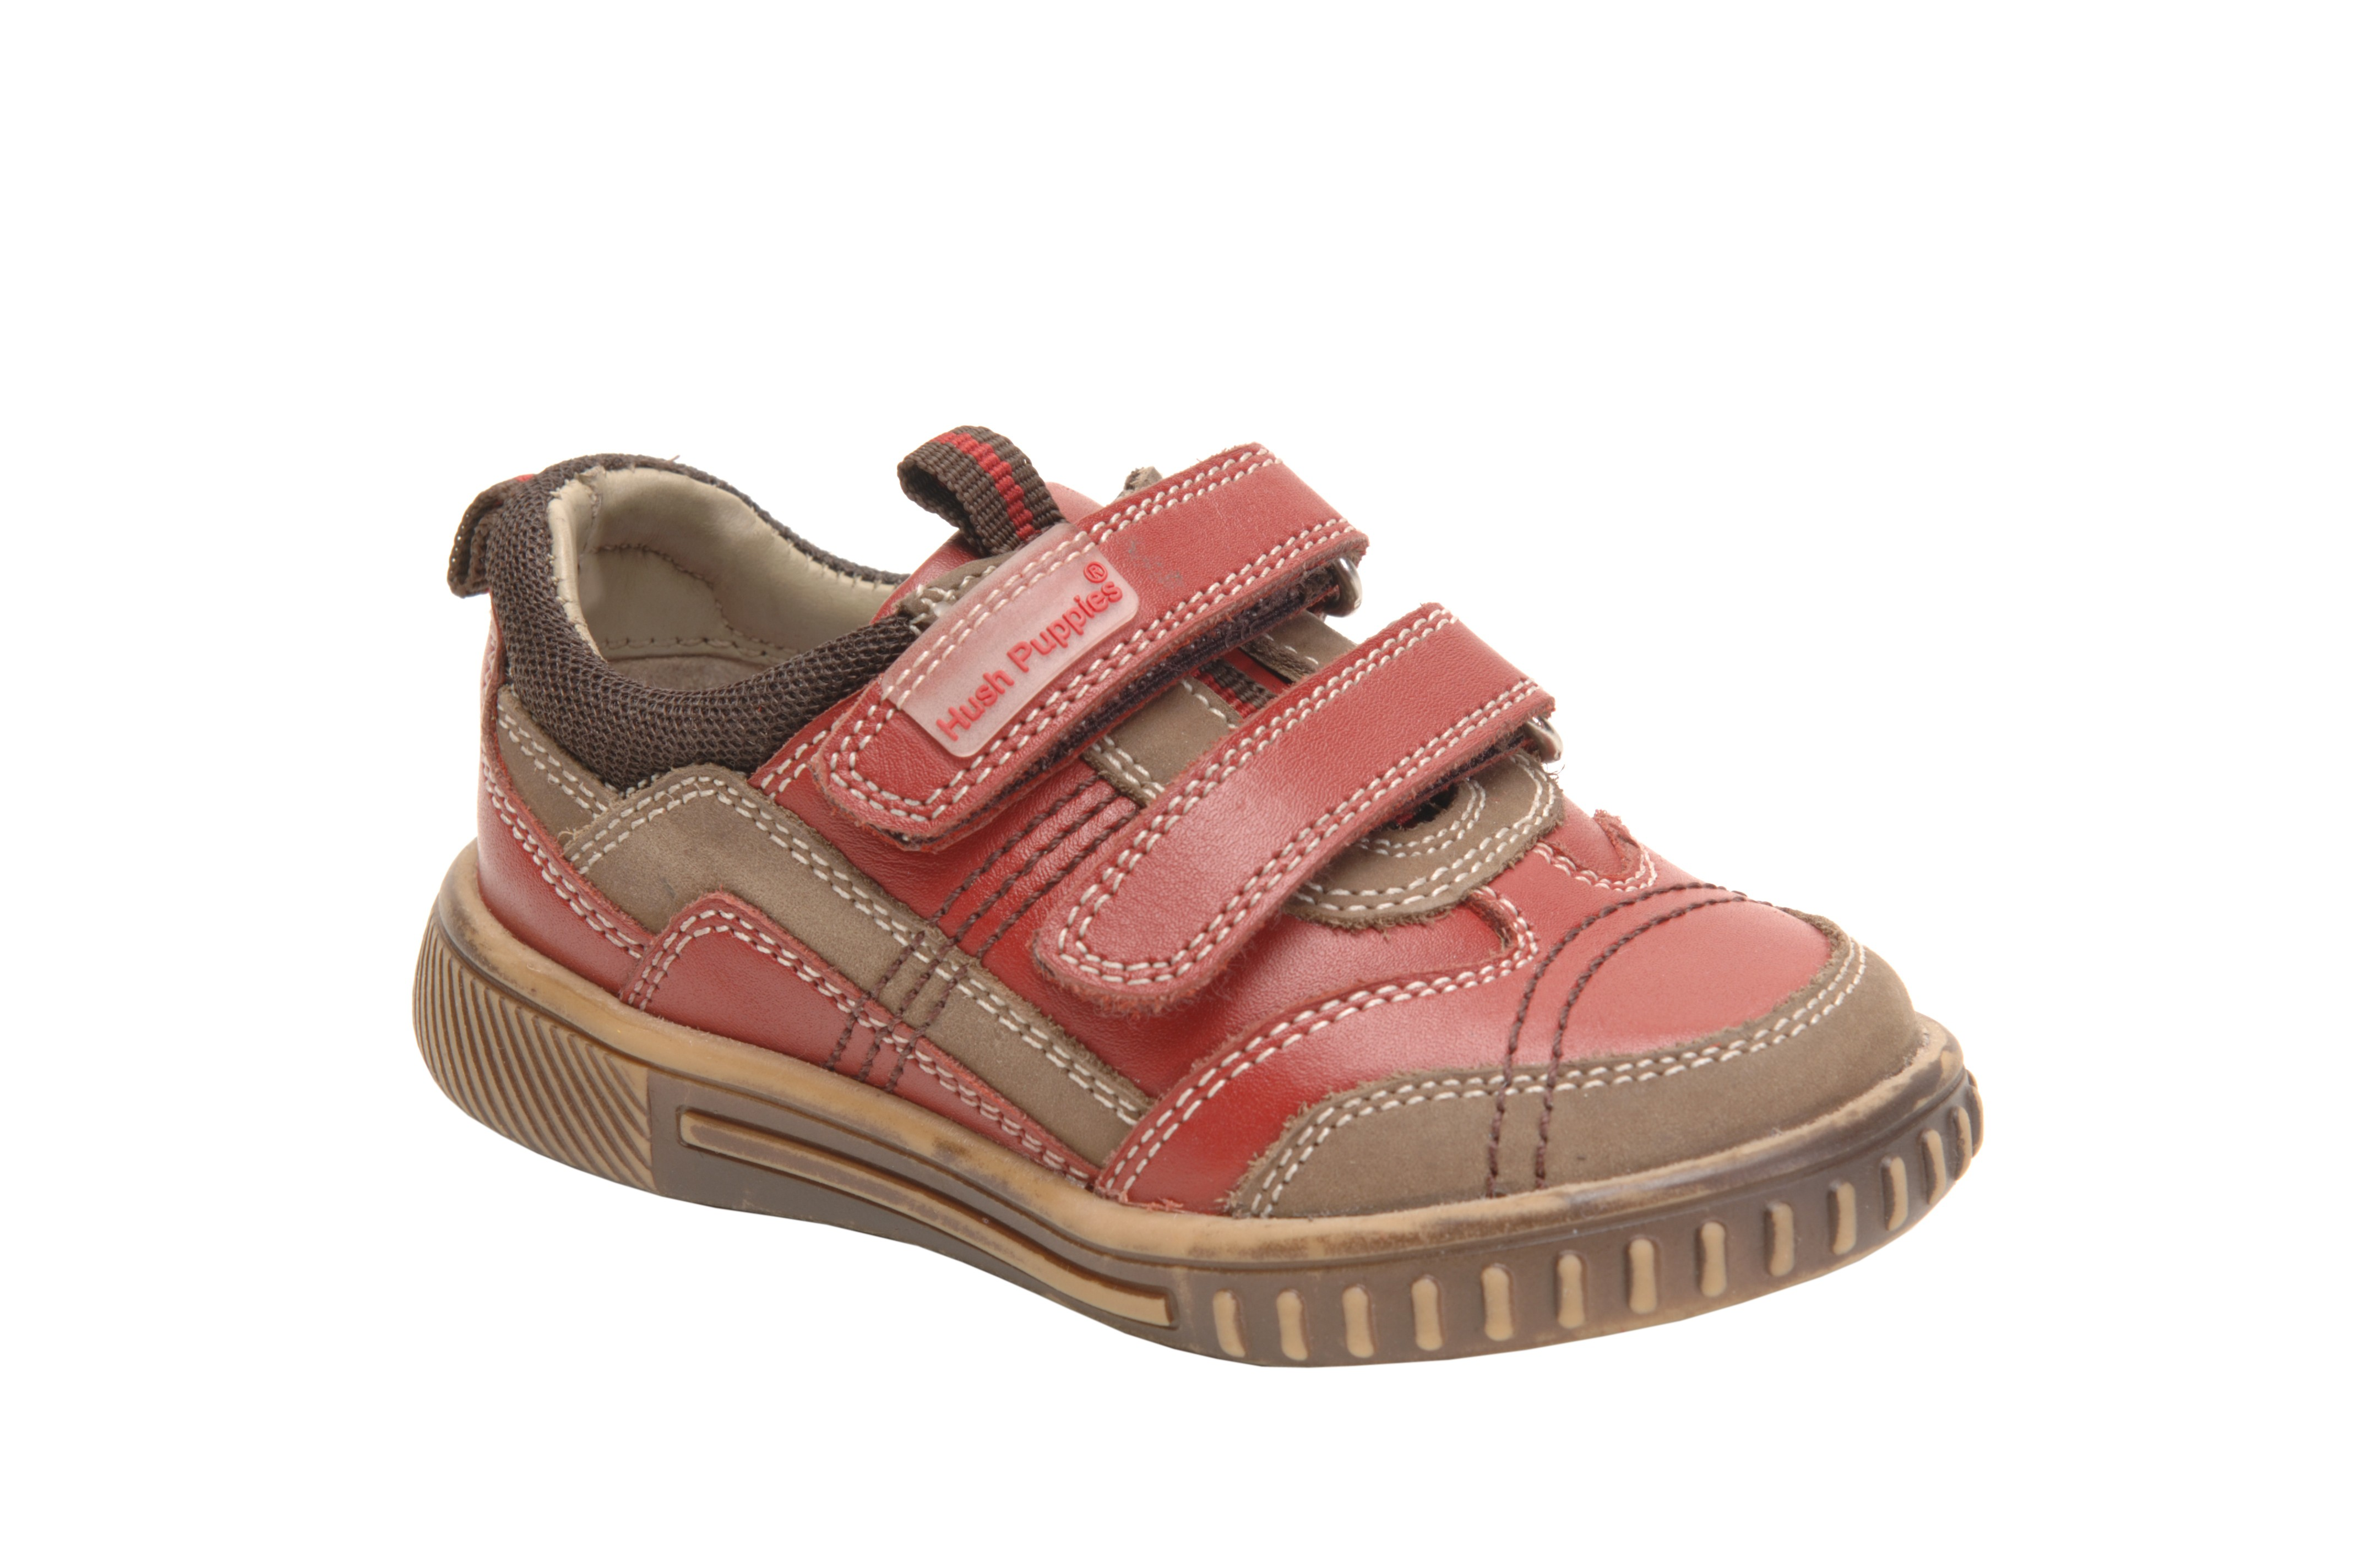 Hush Puppies Lionfish Red Shoes Little Wanderers